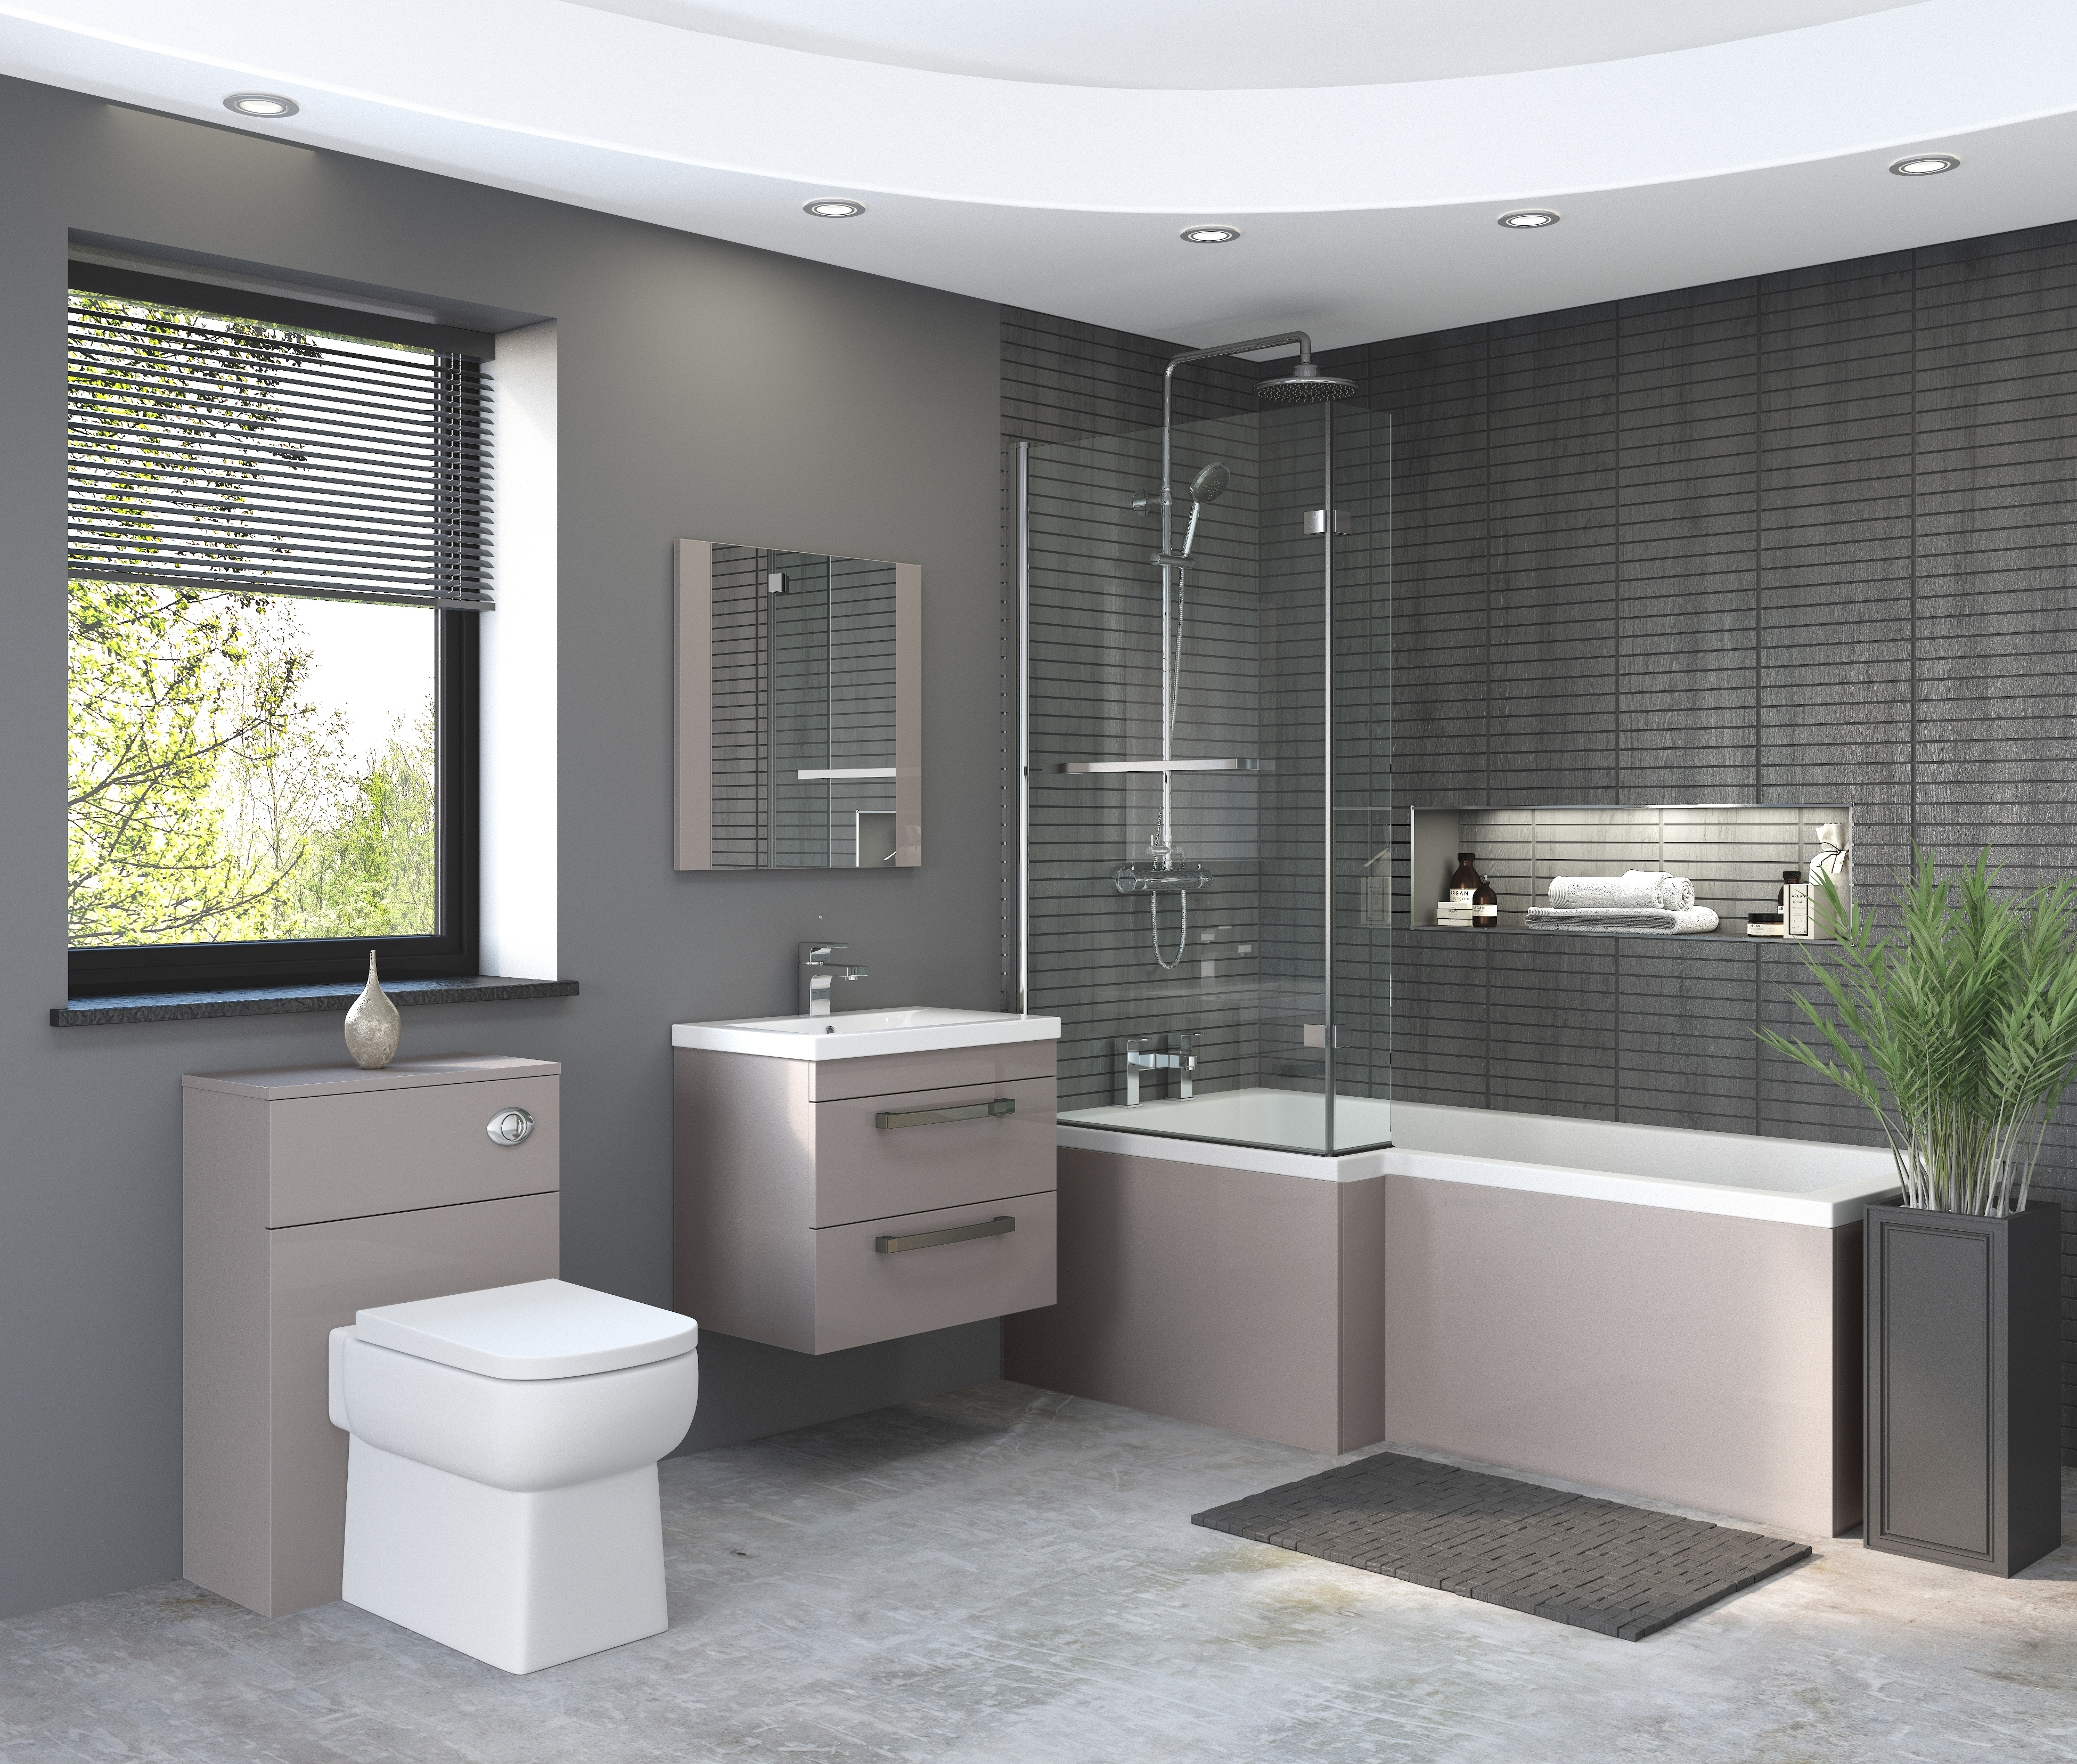 Bathroom Tiles Eastbourne eastbourne bathrooms & tiles - contact us